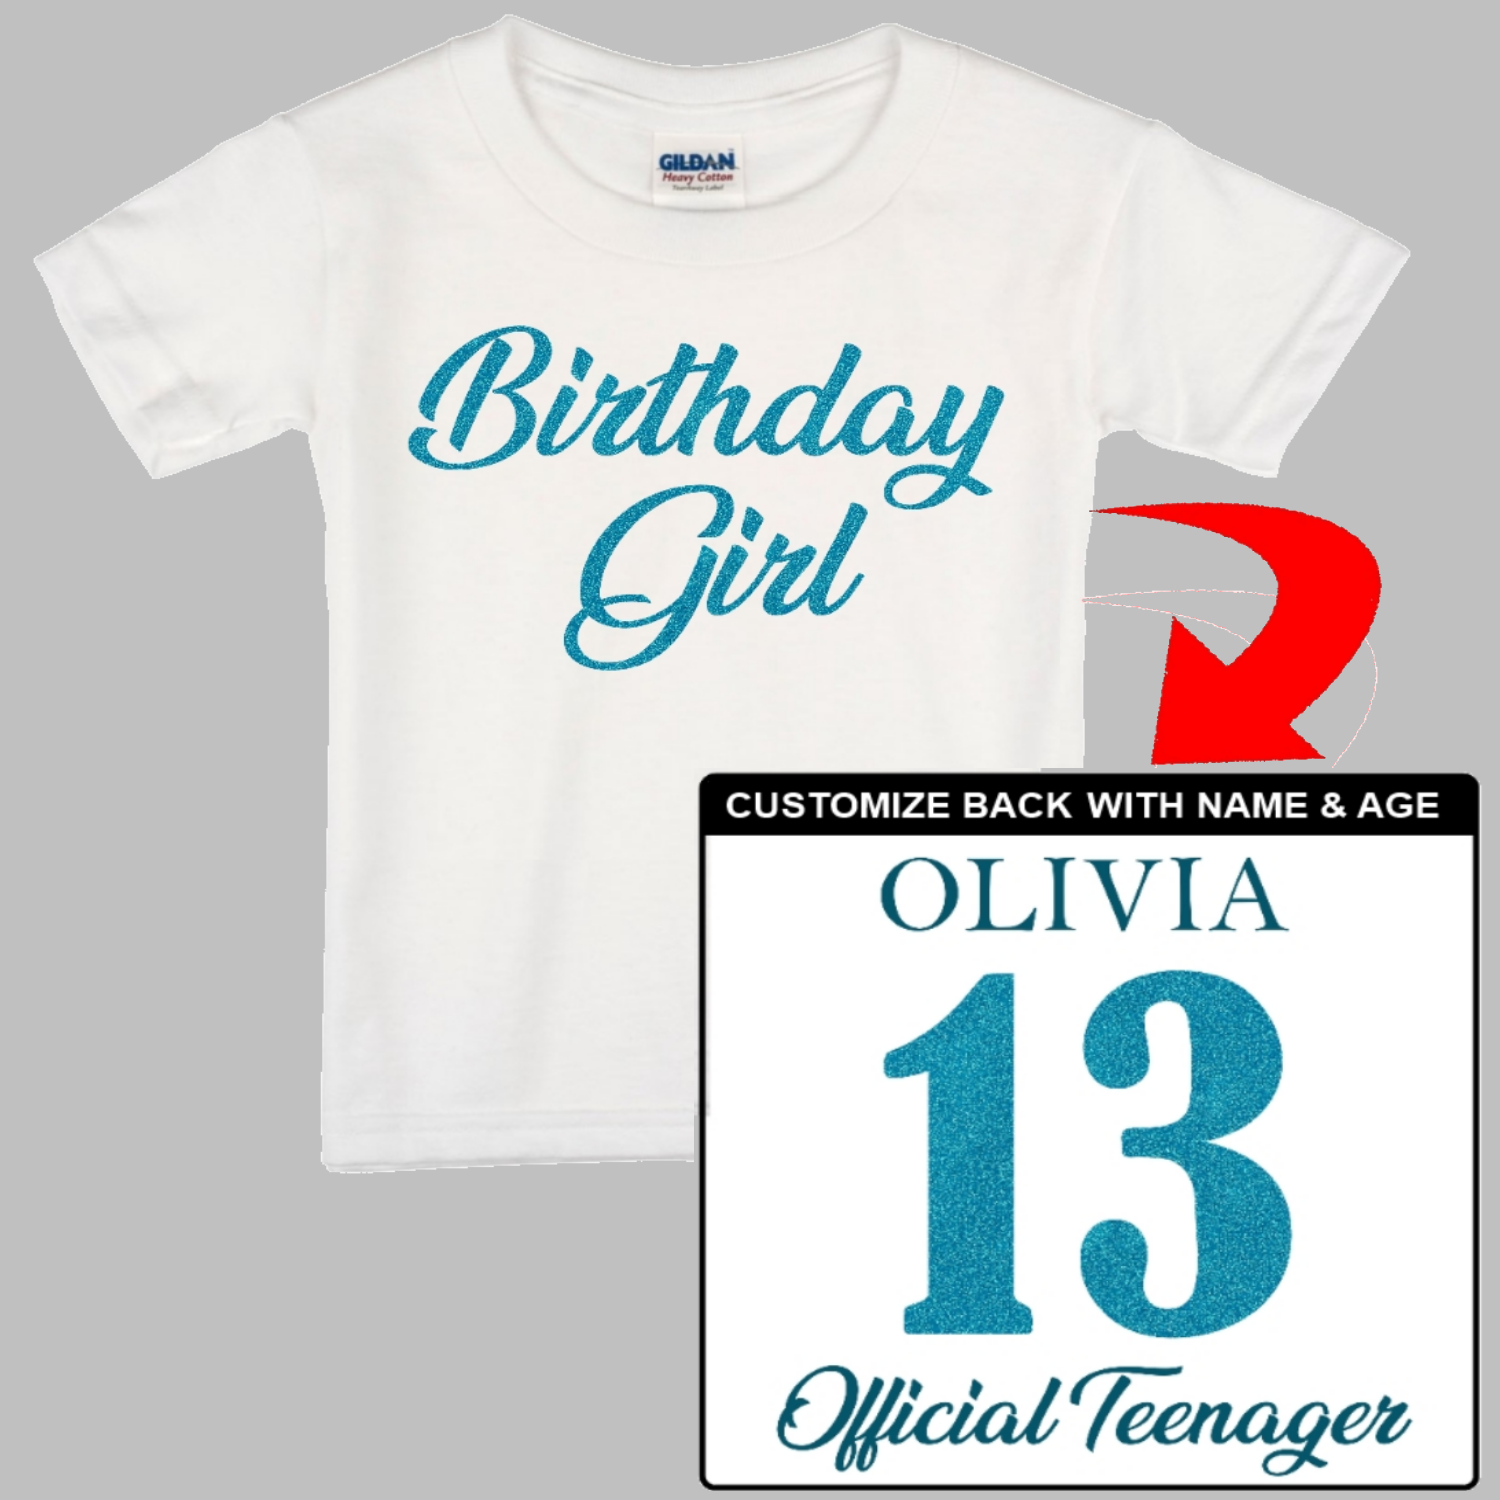 Birthday Girl Shirt - Name, Age, Custom Title - Girl's Happy Birthday. Custom T-Shirt with your girl's name and age on the back. Personalized Birthday T-Shirt